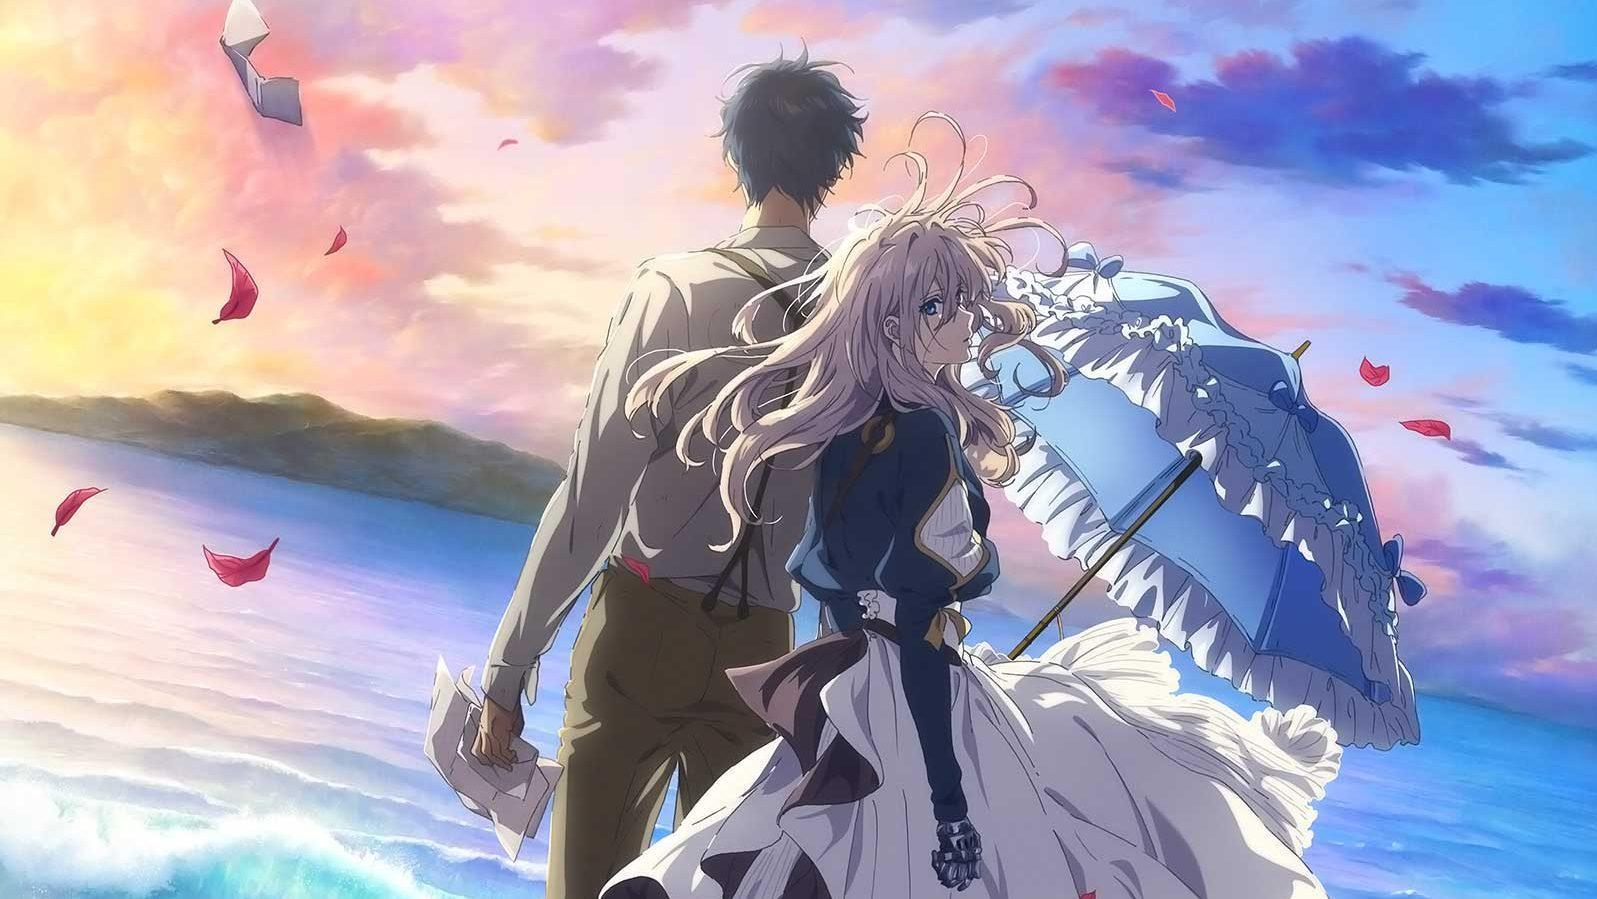 Emotional anime like To Your Eternity, Violet Evergarden